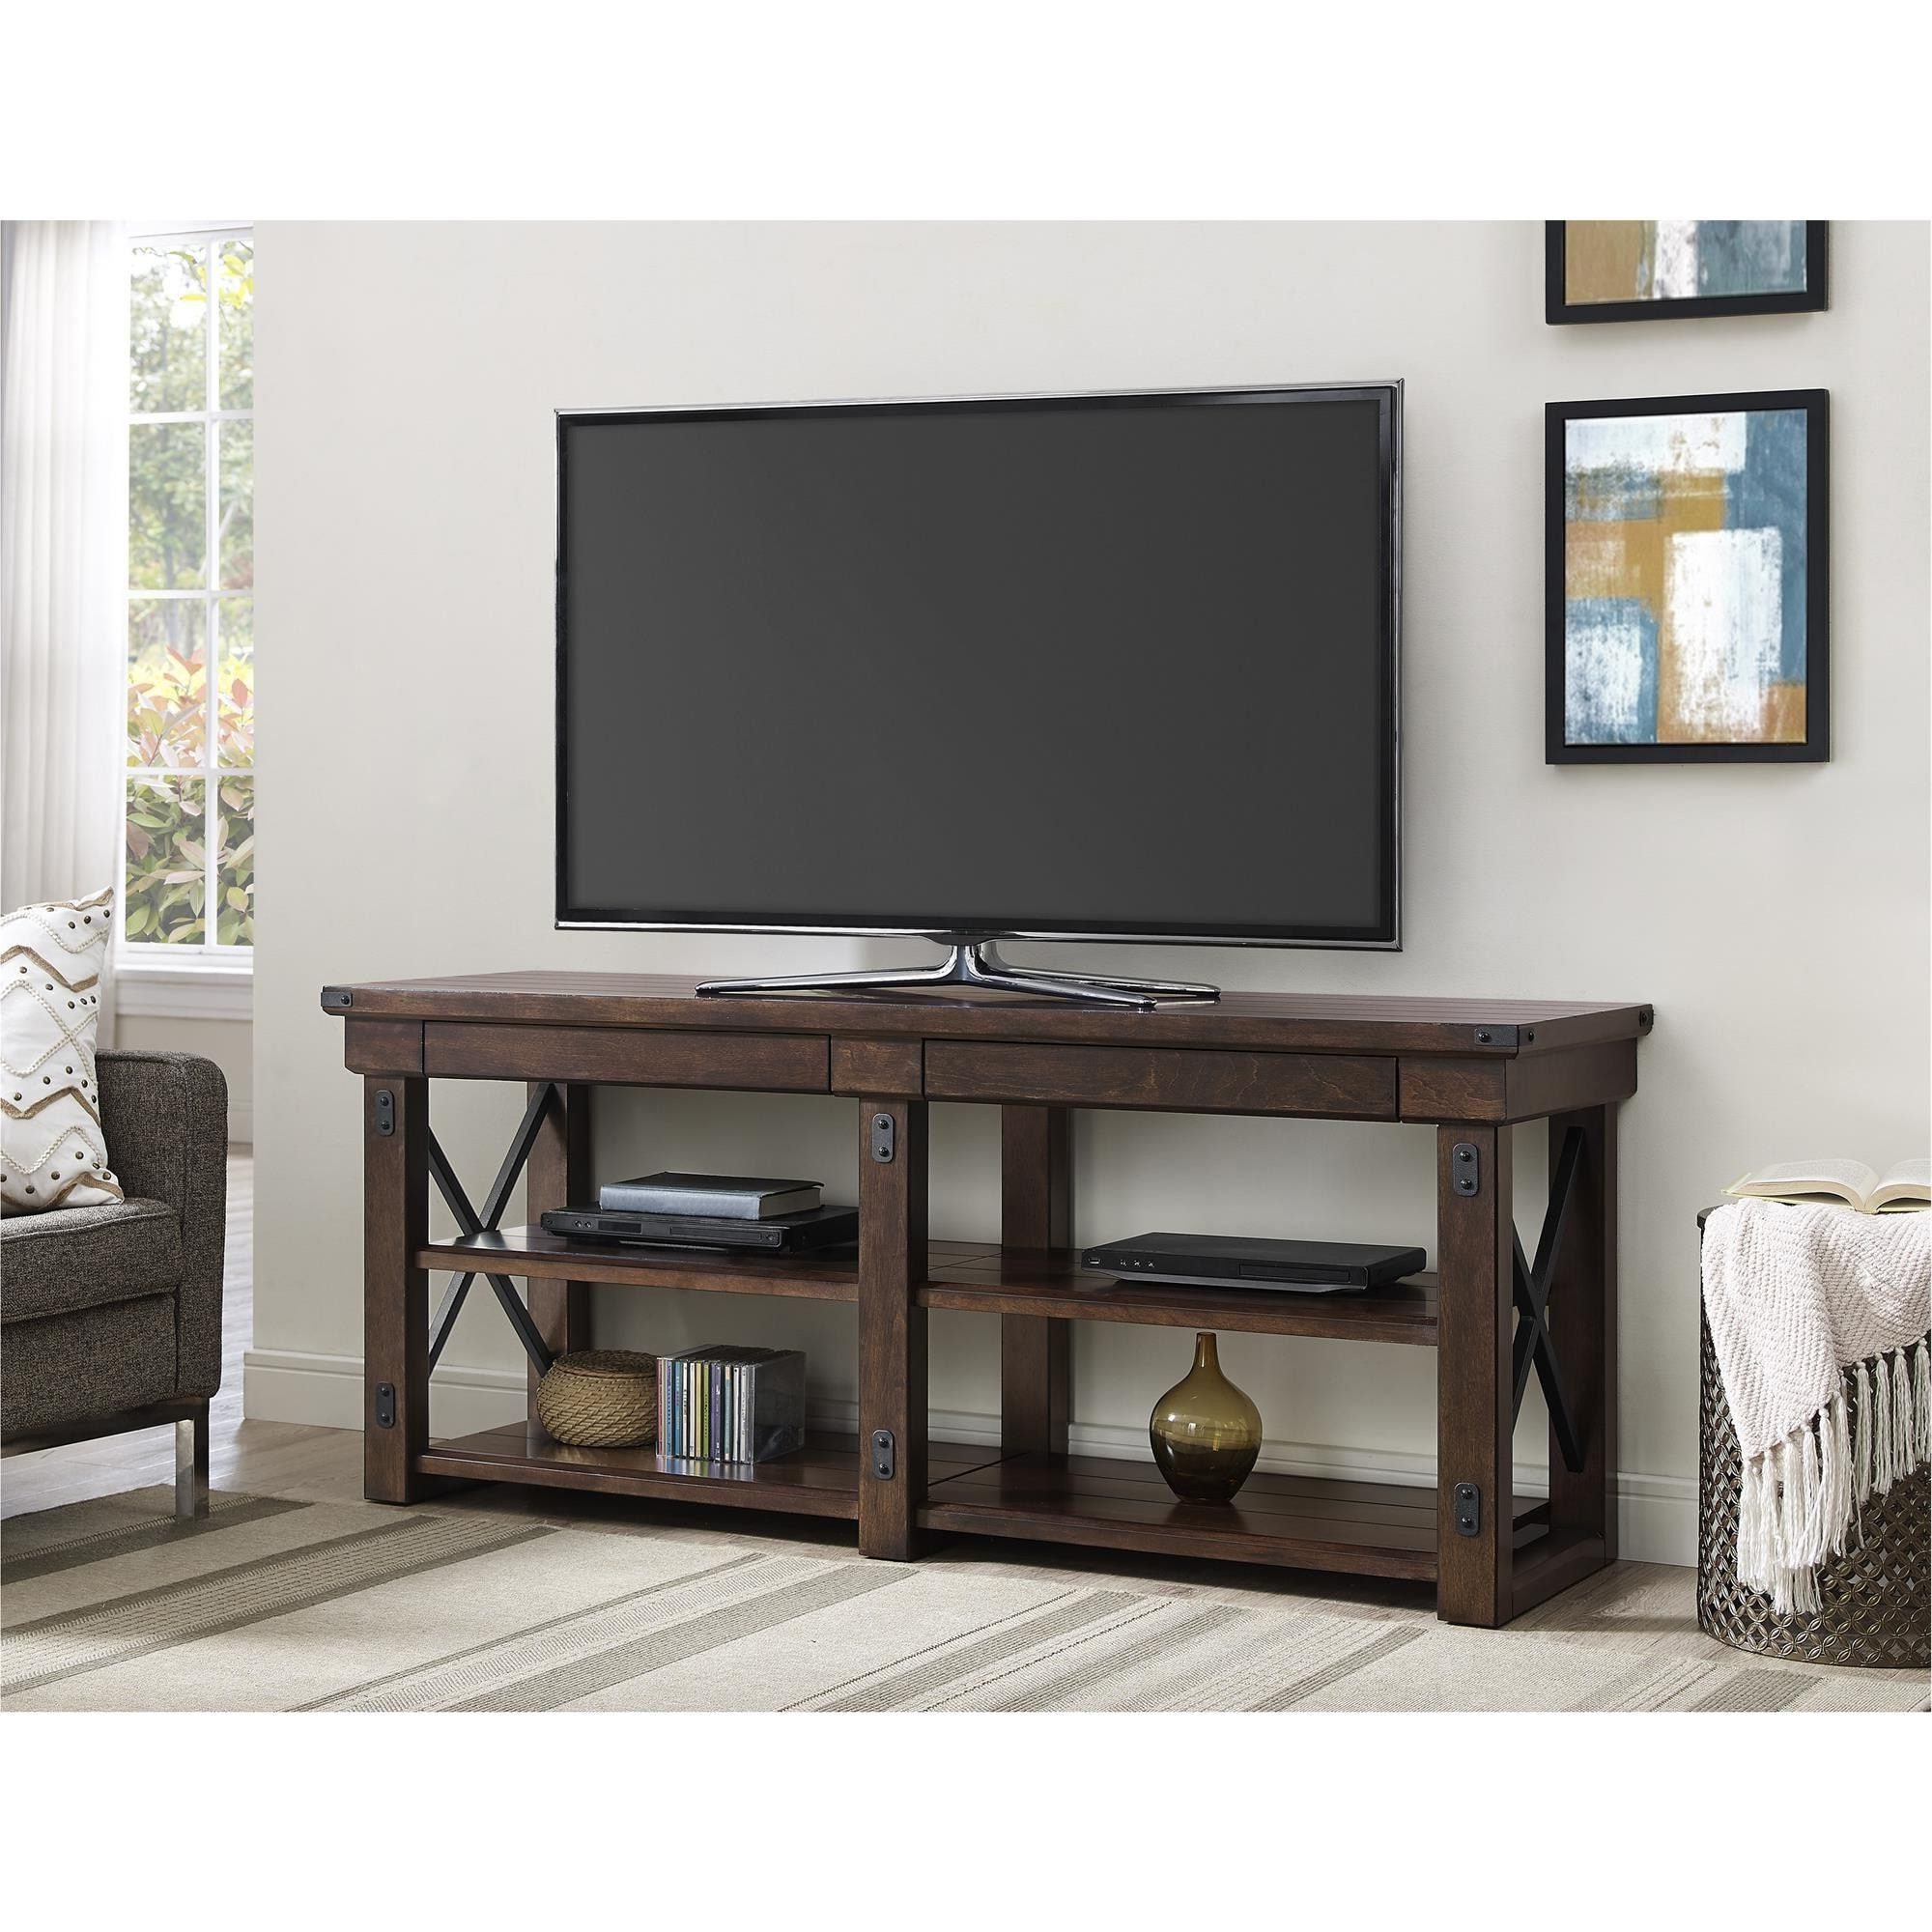 Most Popular Lockable Tv Stands Pertaining To Ameriwood Home Wildwood Mahogany Veneer 65 Inch Tv Stand (65 Inch Tv (View 13 of 20)